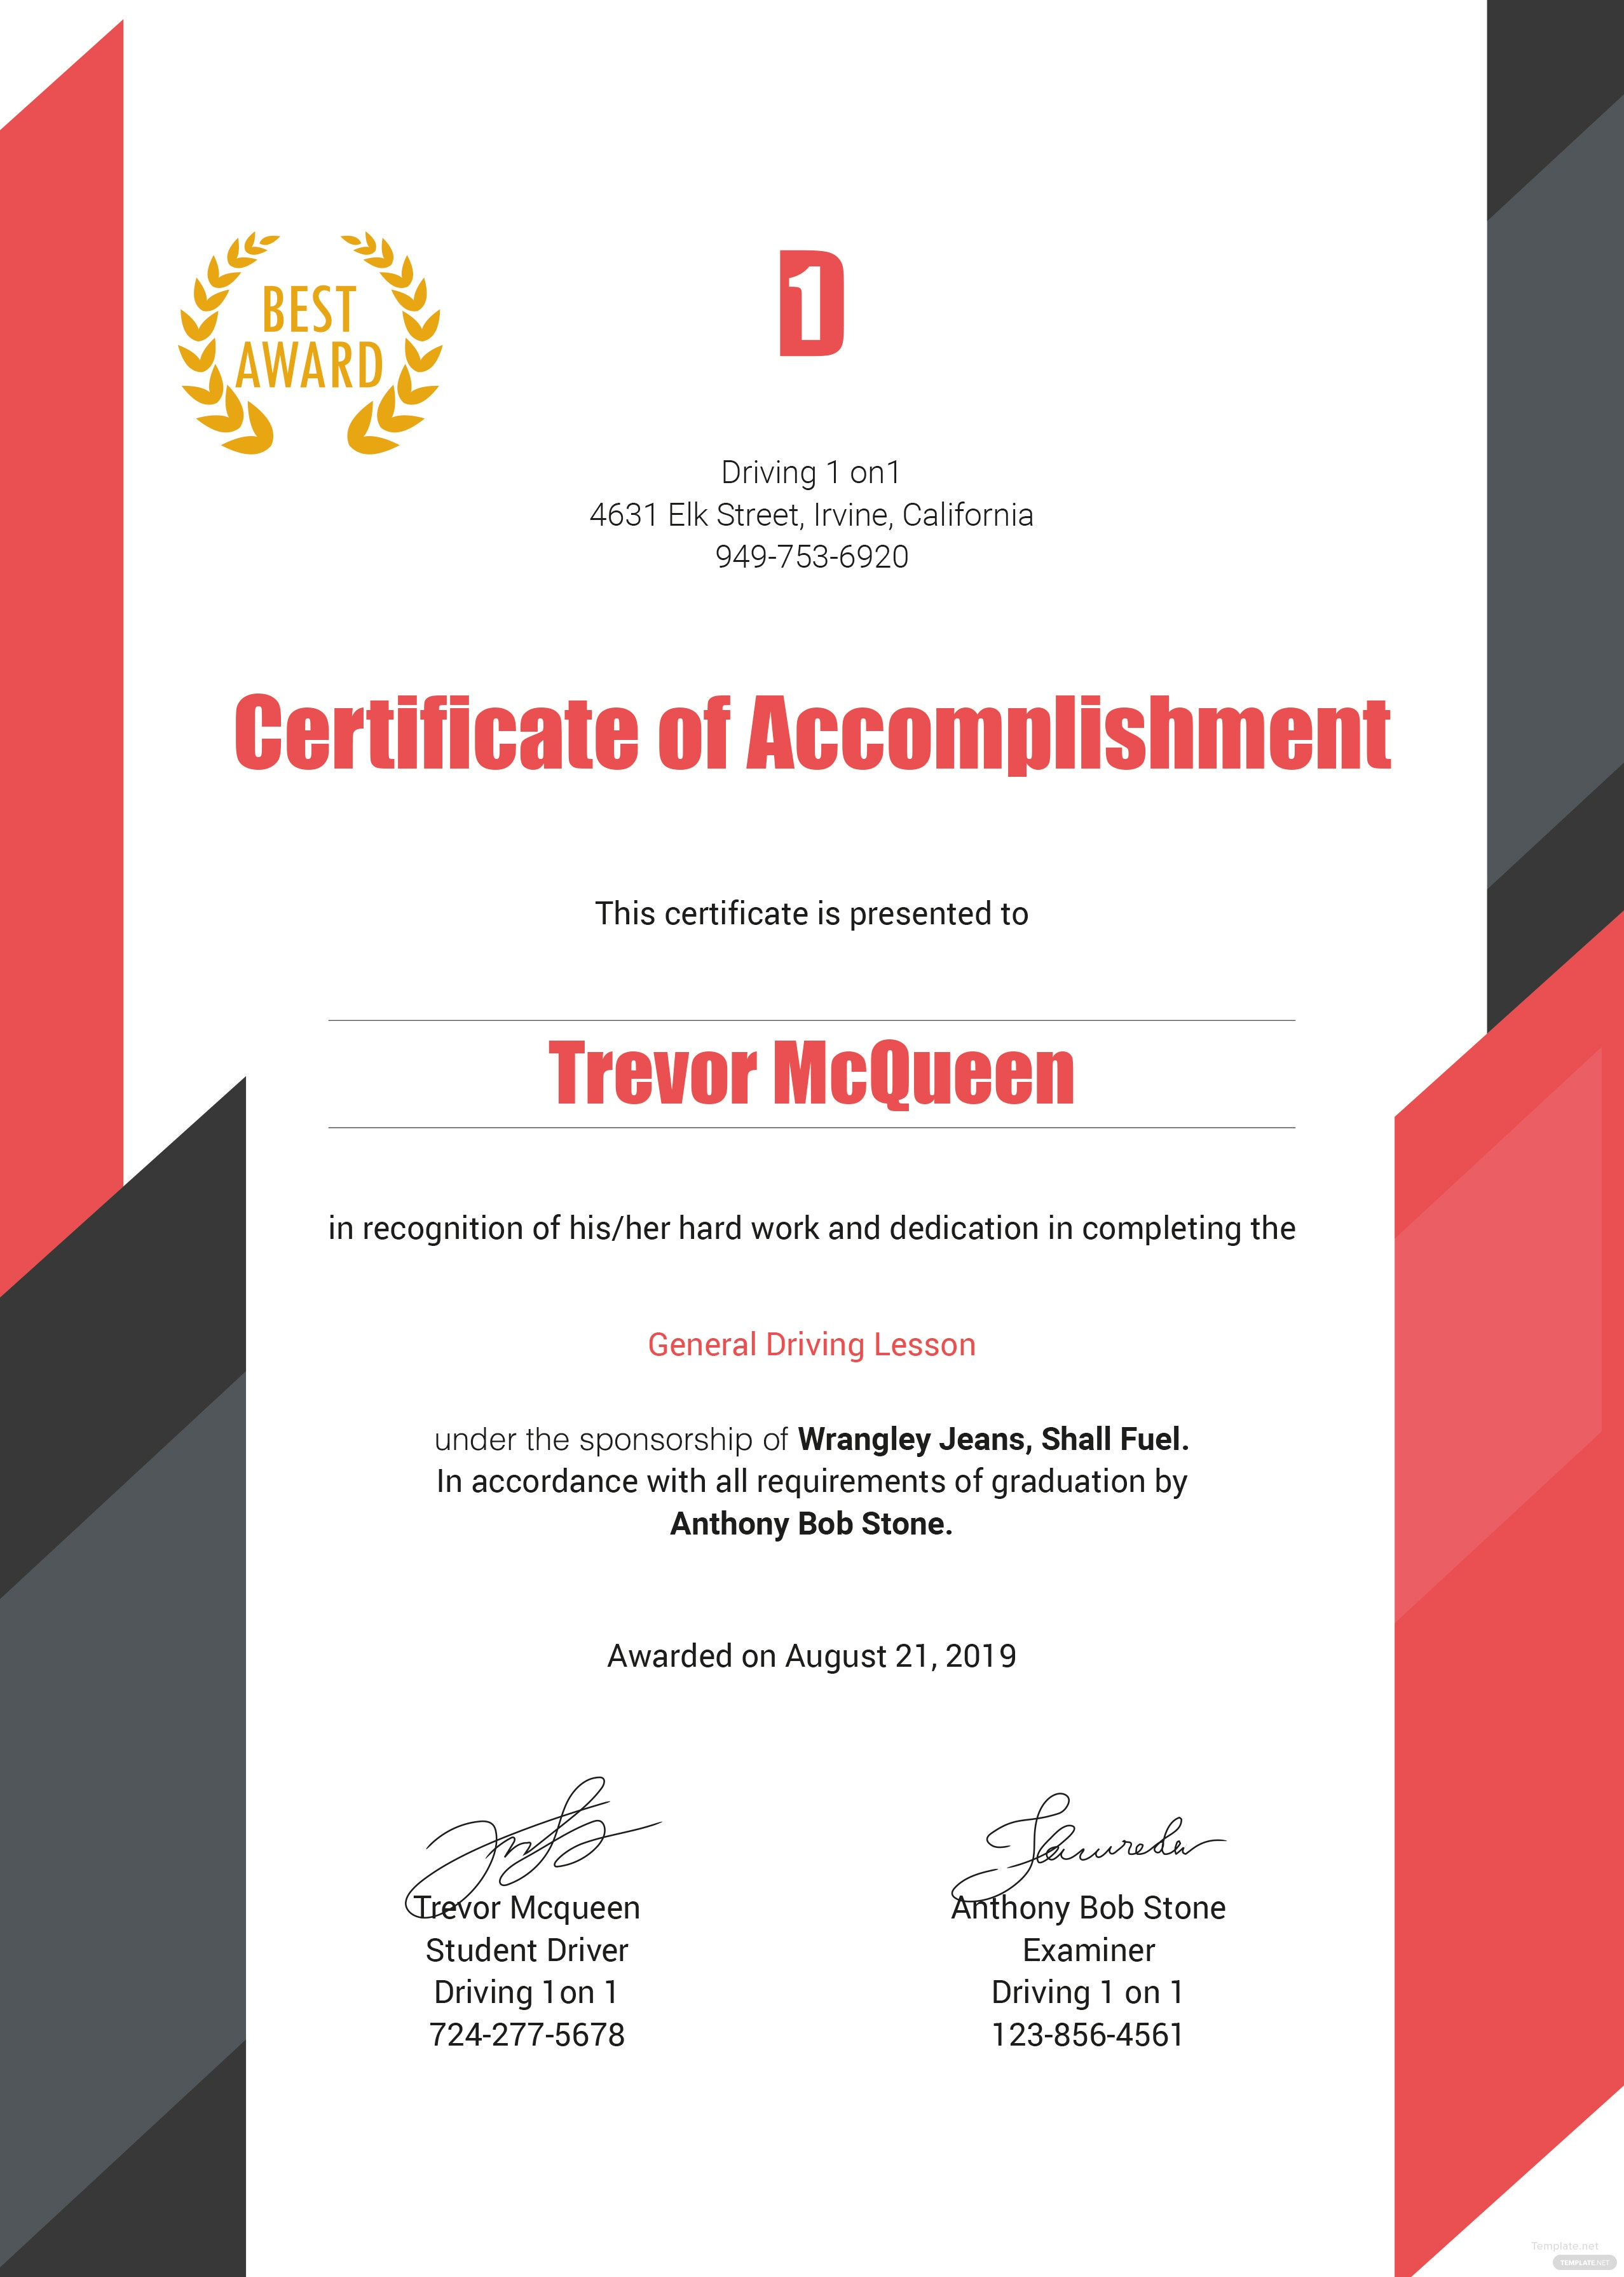 free driving experience certificate template in microsoft